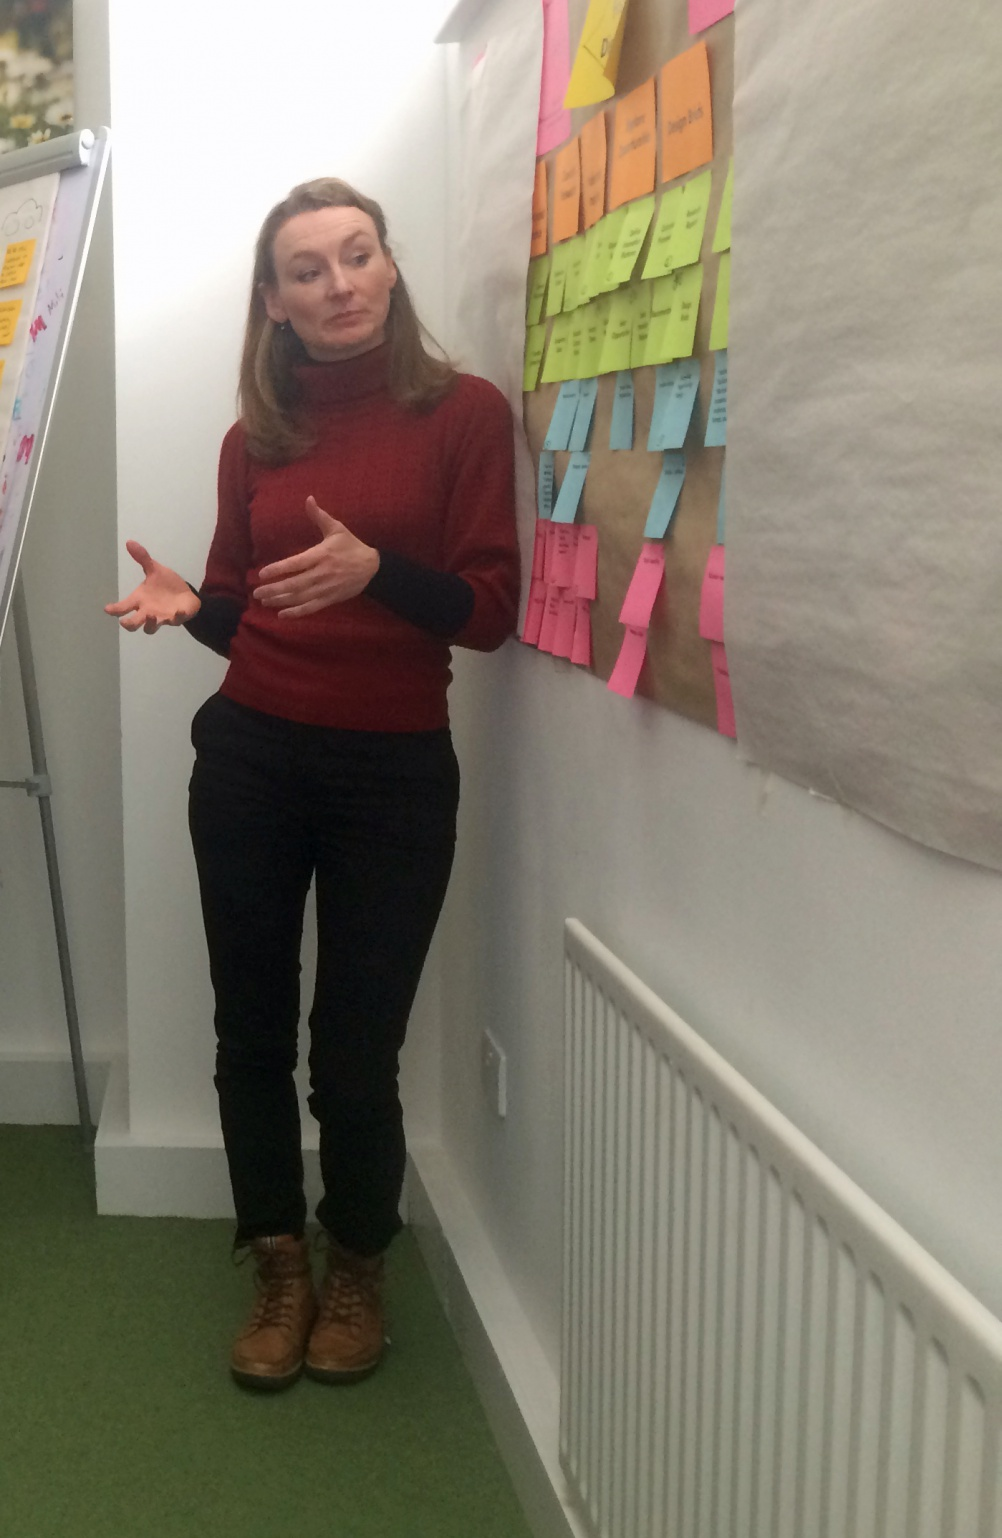 Marianne Guldbrandsen leads an internal workshop